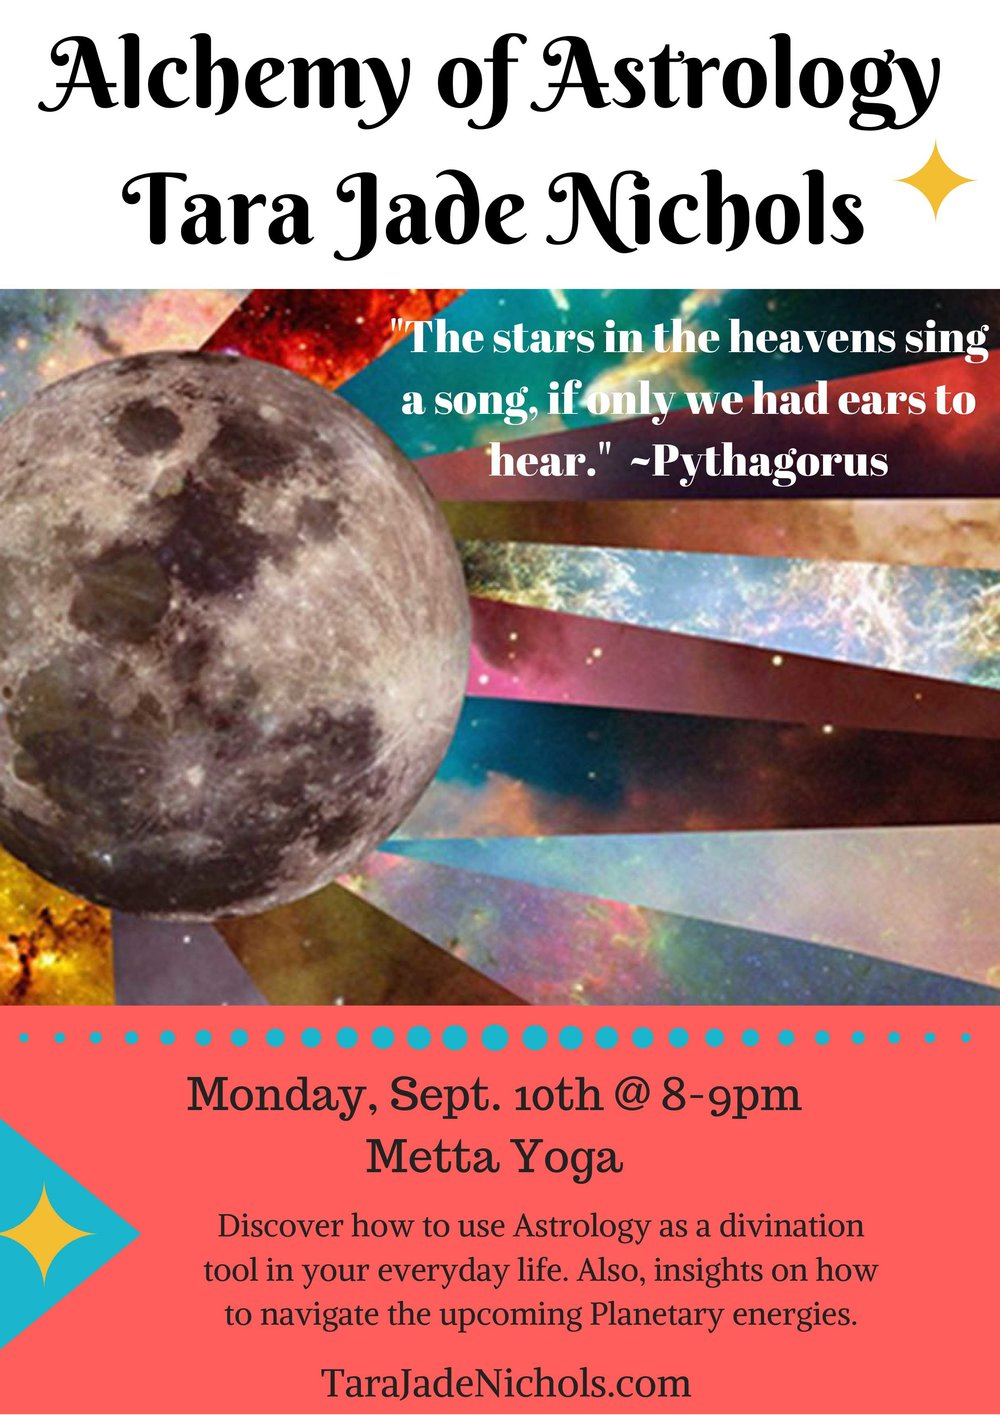 Astrology with Tara Jade Nichols